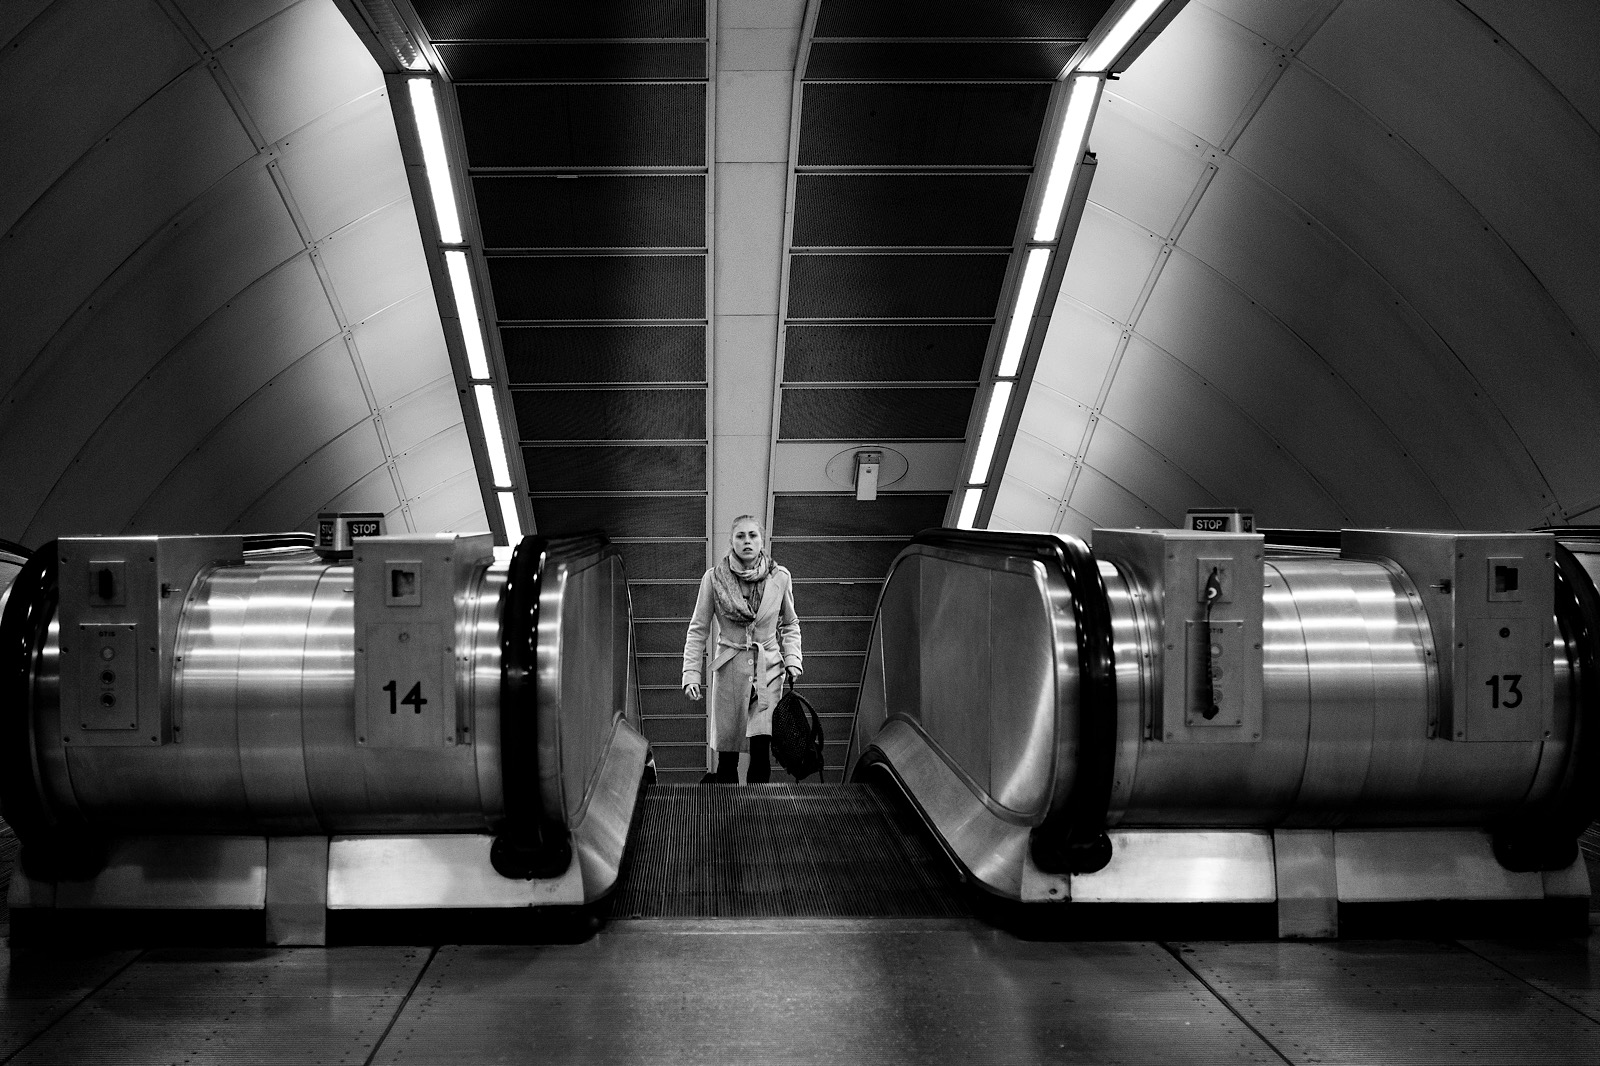 Black and White photo of a girl walking up escalators on the London underground